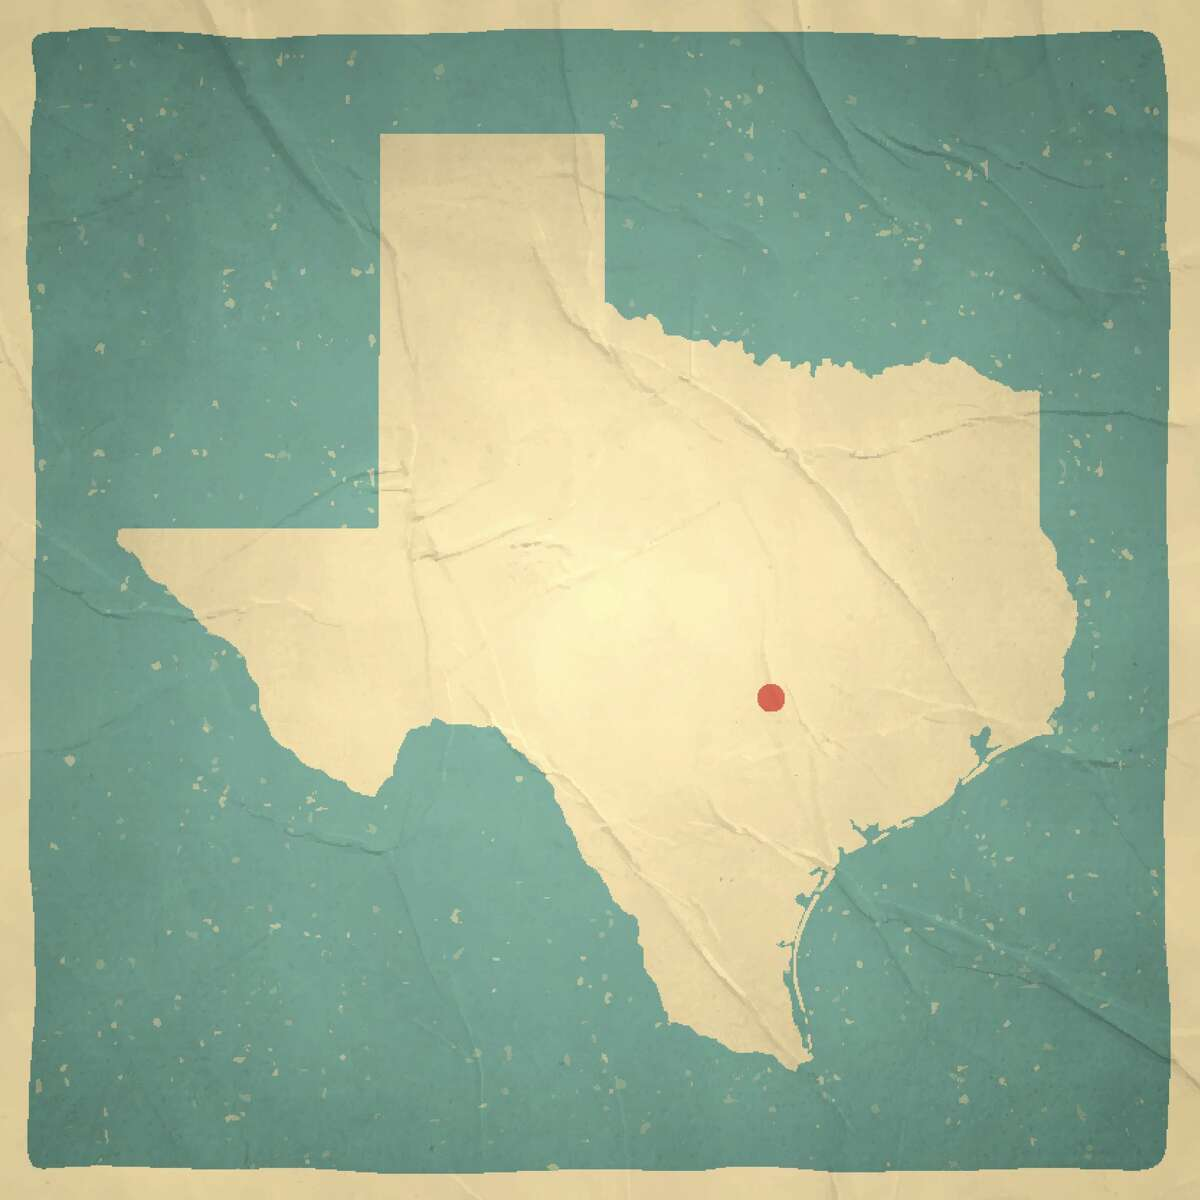 Small town Just 218,981 people lived within the Austin city limits at the time of the shooting, compared to 931,830 currently.